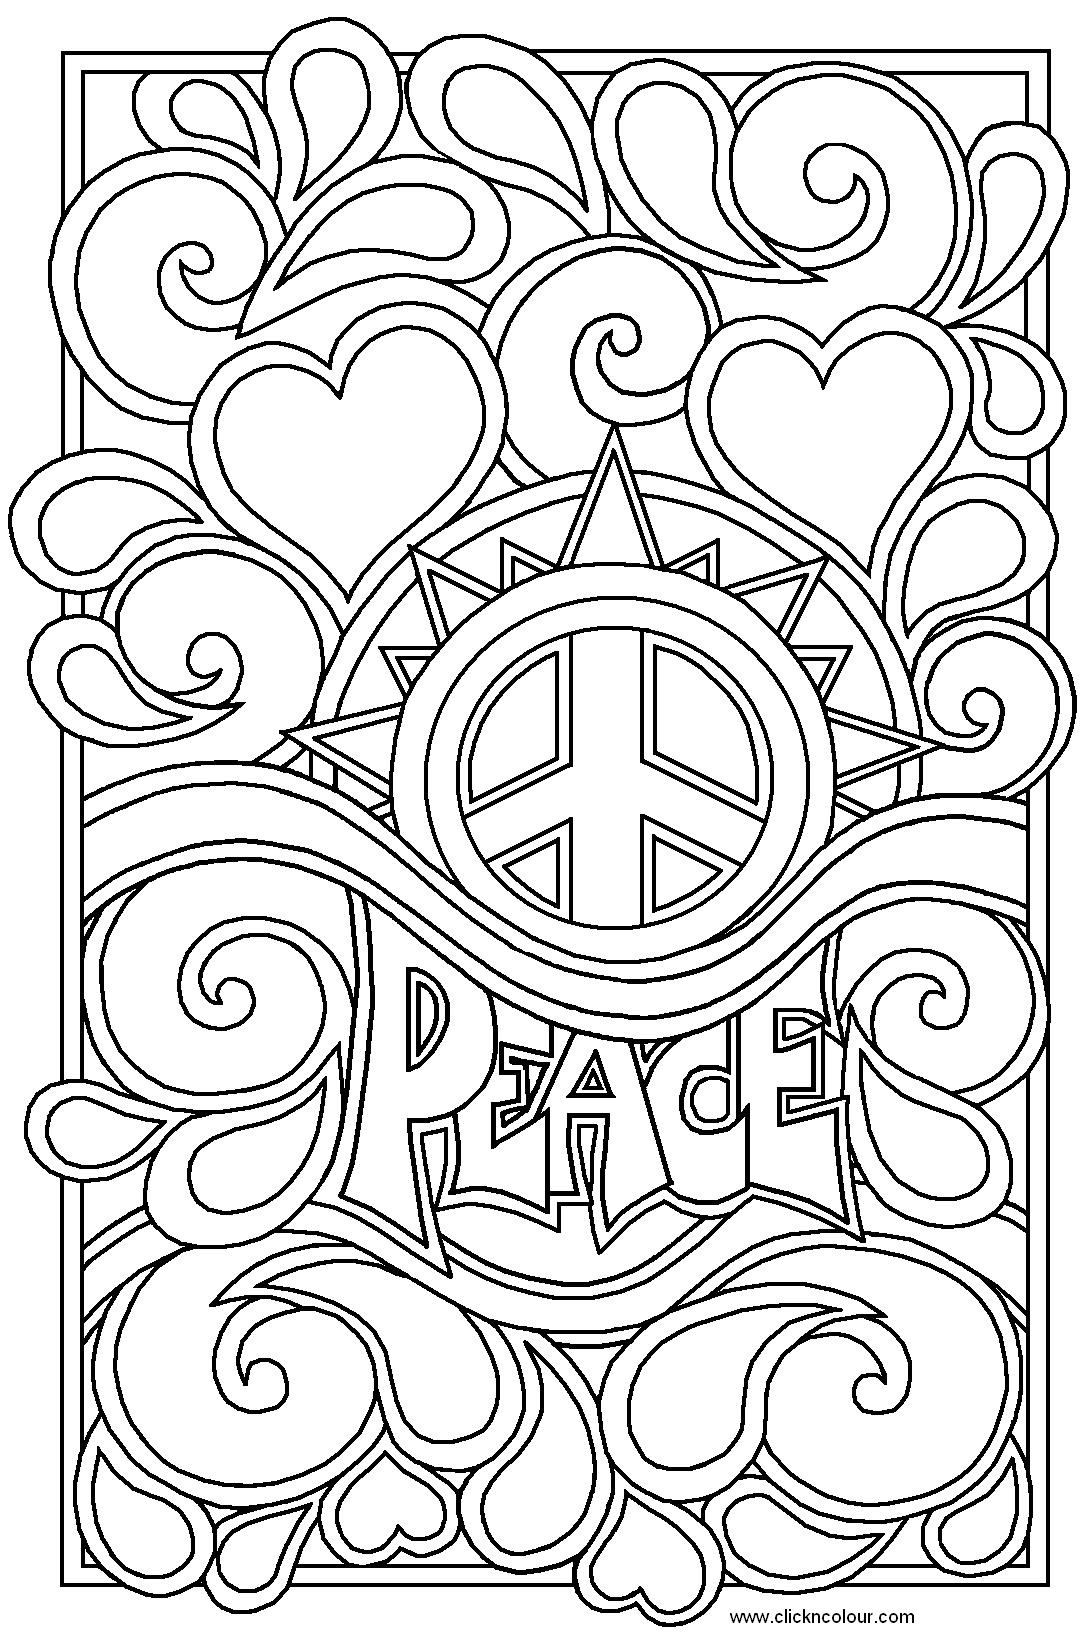 1089x1636 Endorsed Peace Sign Coloring Pages To Print Free Printable